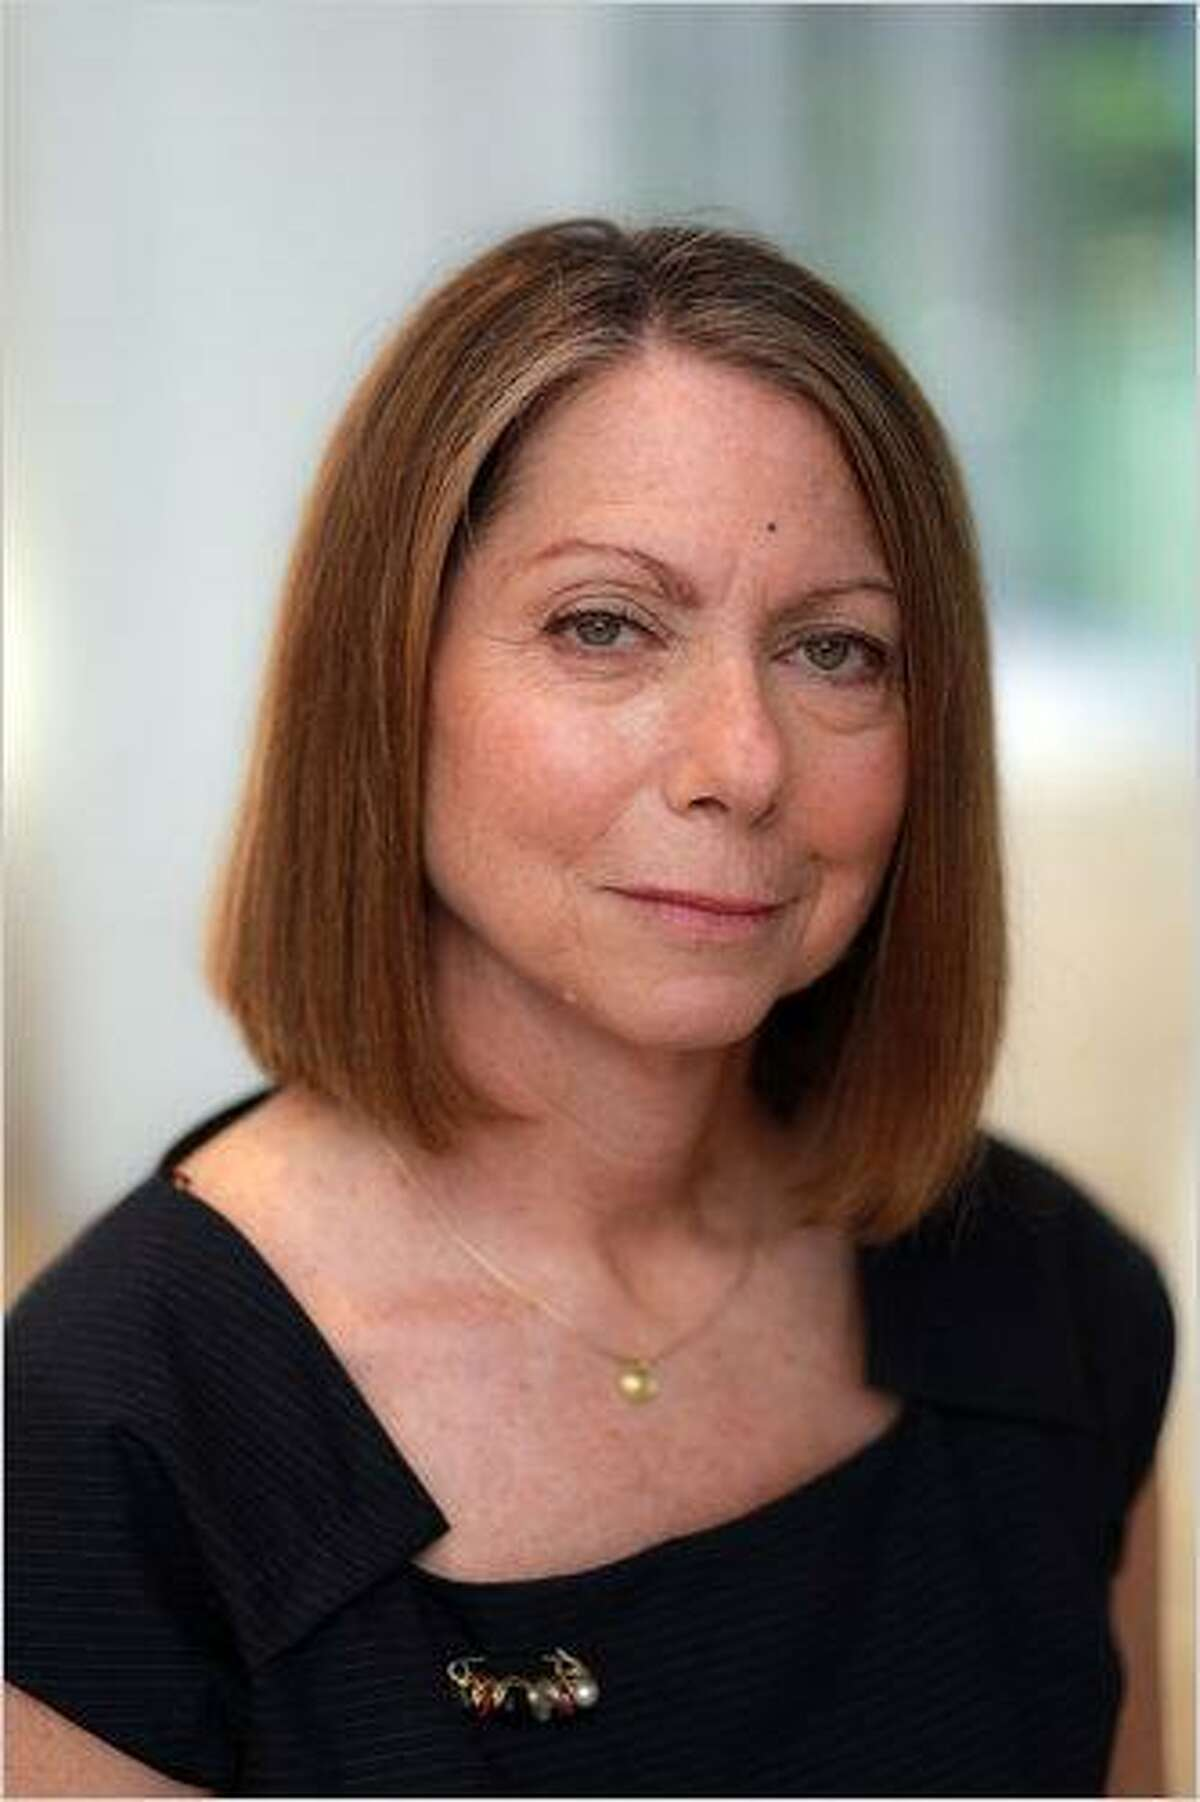 Jill Abramson named first woman executive editor of The New York Times in 160 years.